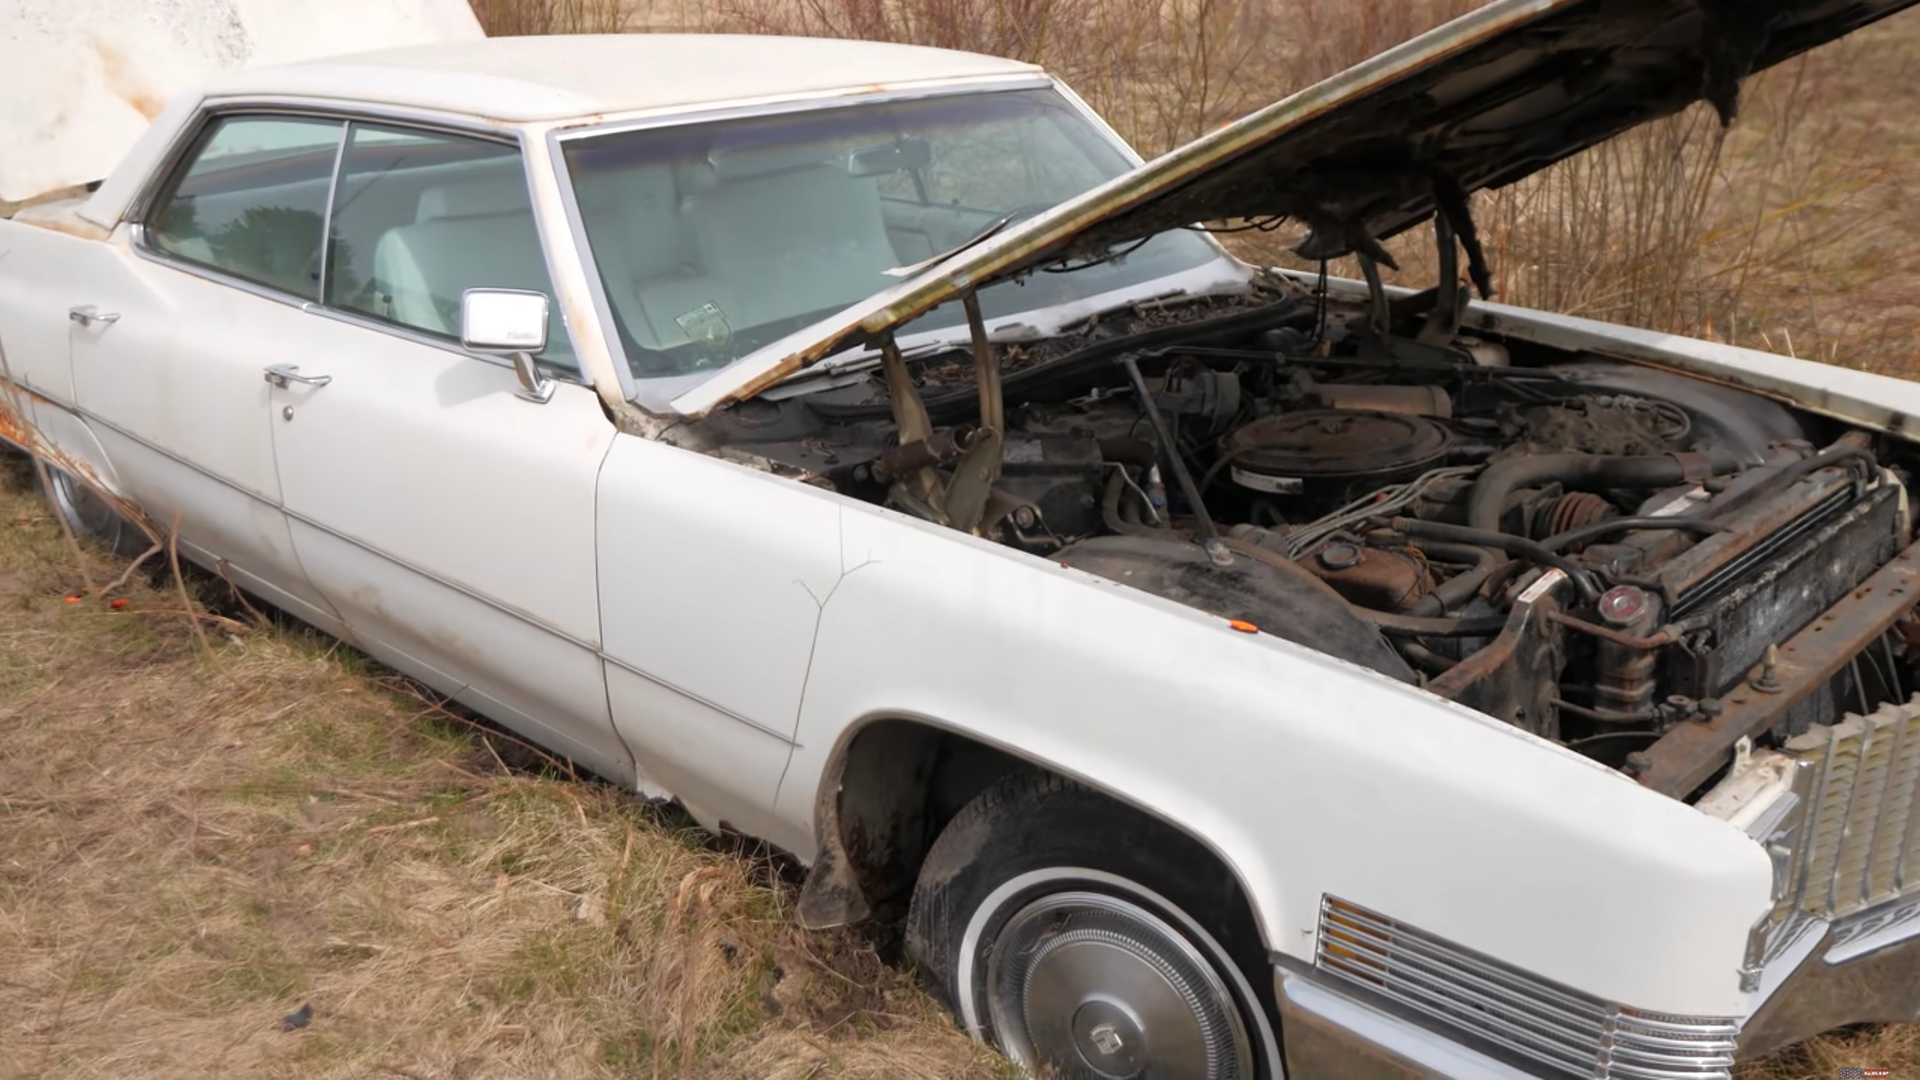 Can Lovable Mechanic Restart 1970 Cadillac After 20 Years In A Field?